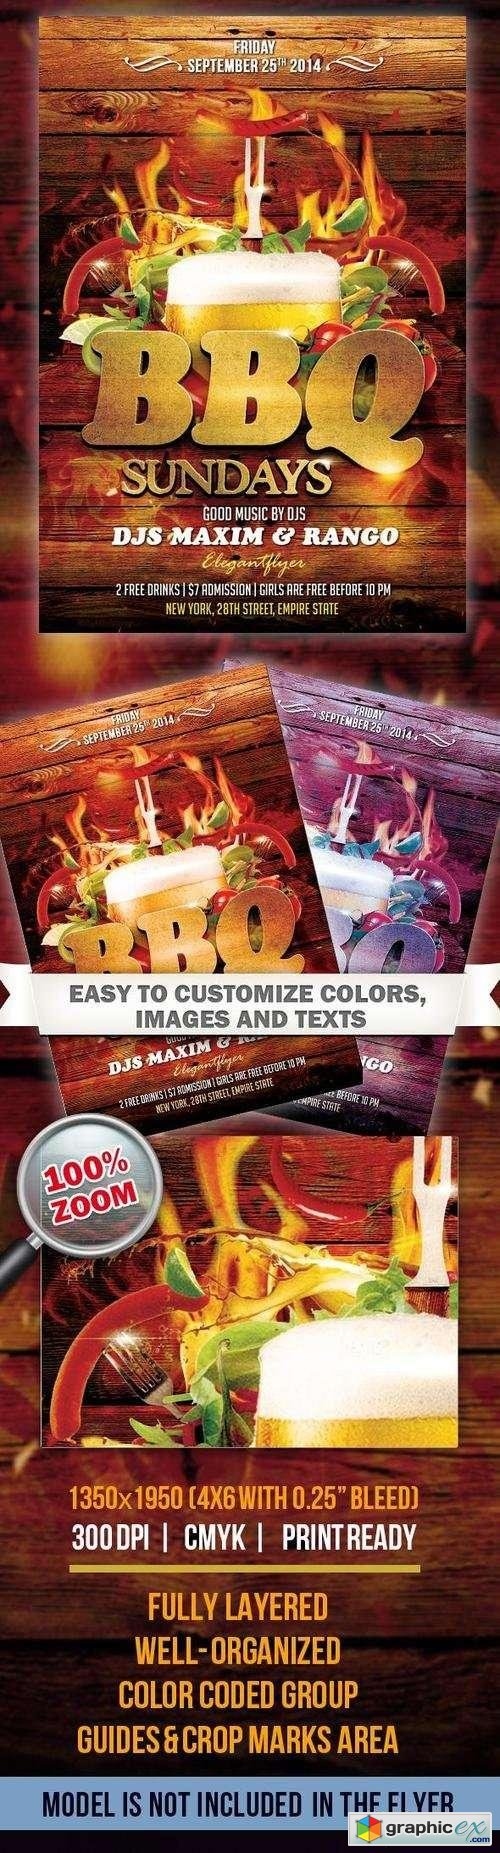 Barbecue(bbq) � Flyer PSD Template